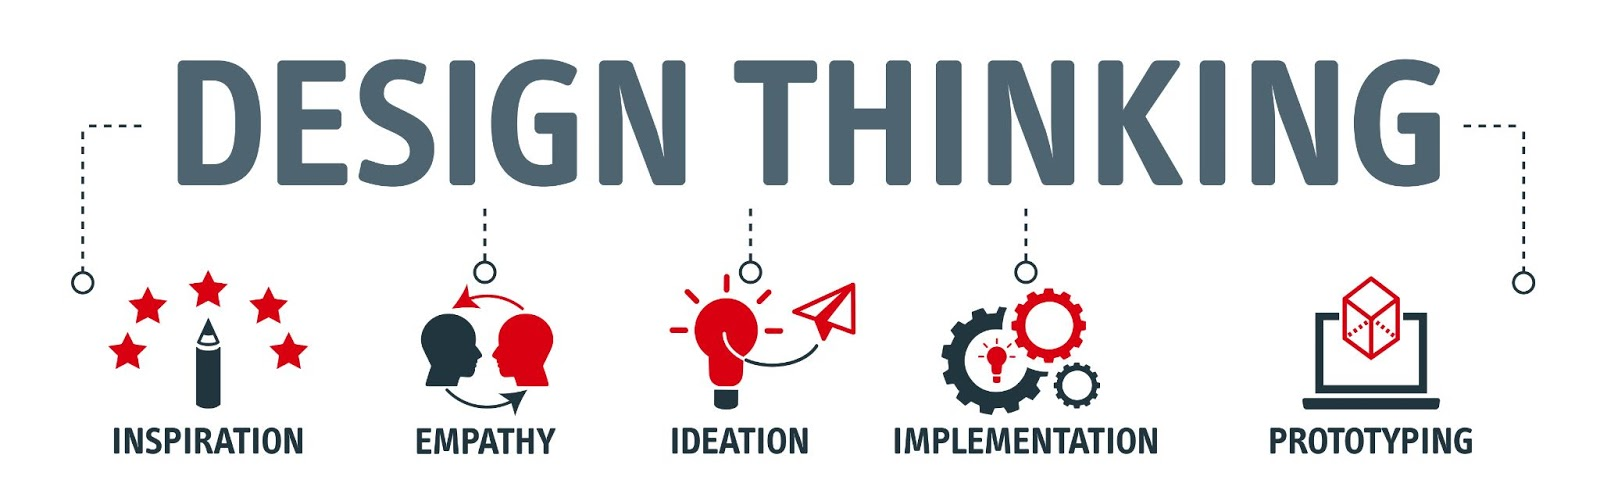 Design Thinking graphic: inspiration, empathy, ideation, implementation, prototyping